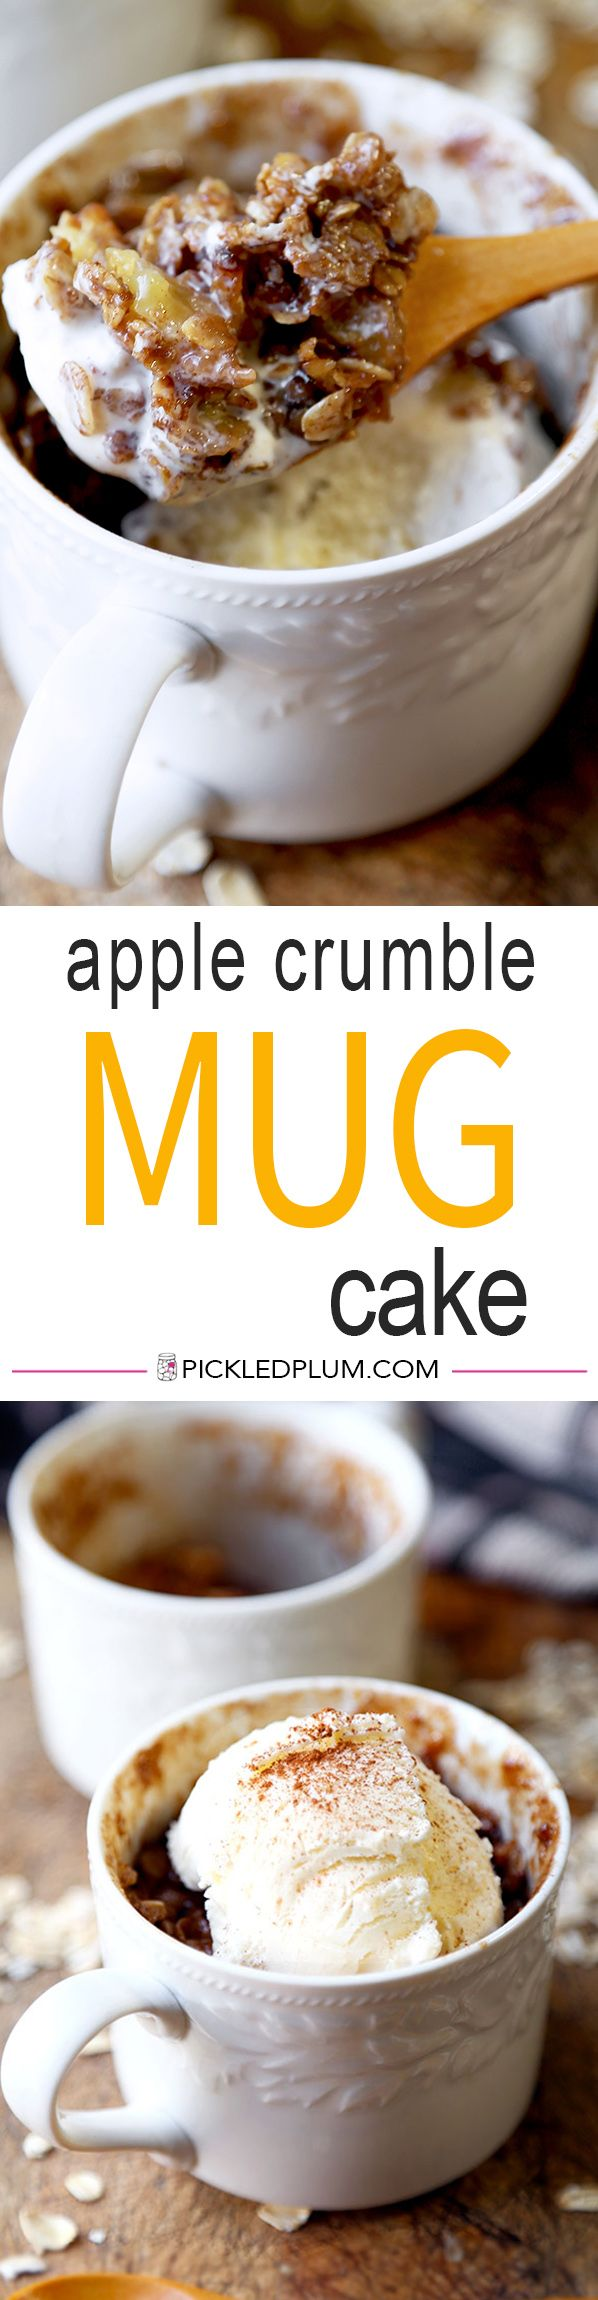 Apple Crumble Mug Cake - A sweet, chewy and fruit loaded Apple Crumble Mug Cake Recipe that tastes divine with a scoop of creamy vanilla ice cream! Ready in 15 minutes or less. Recipe, dessert, snack, apples, mug cake, easy   pickledplum.com